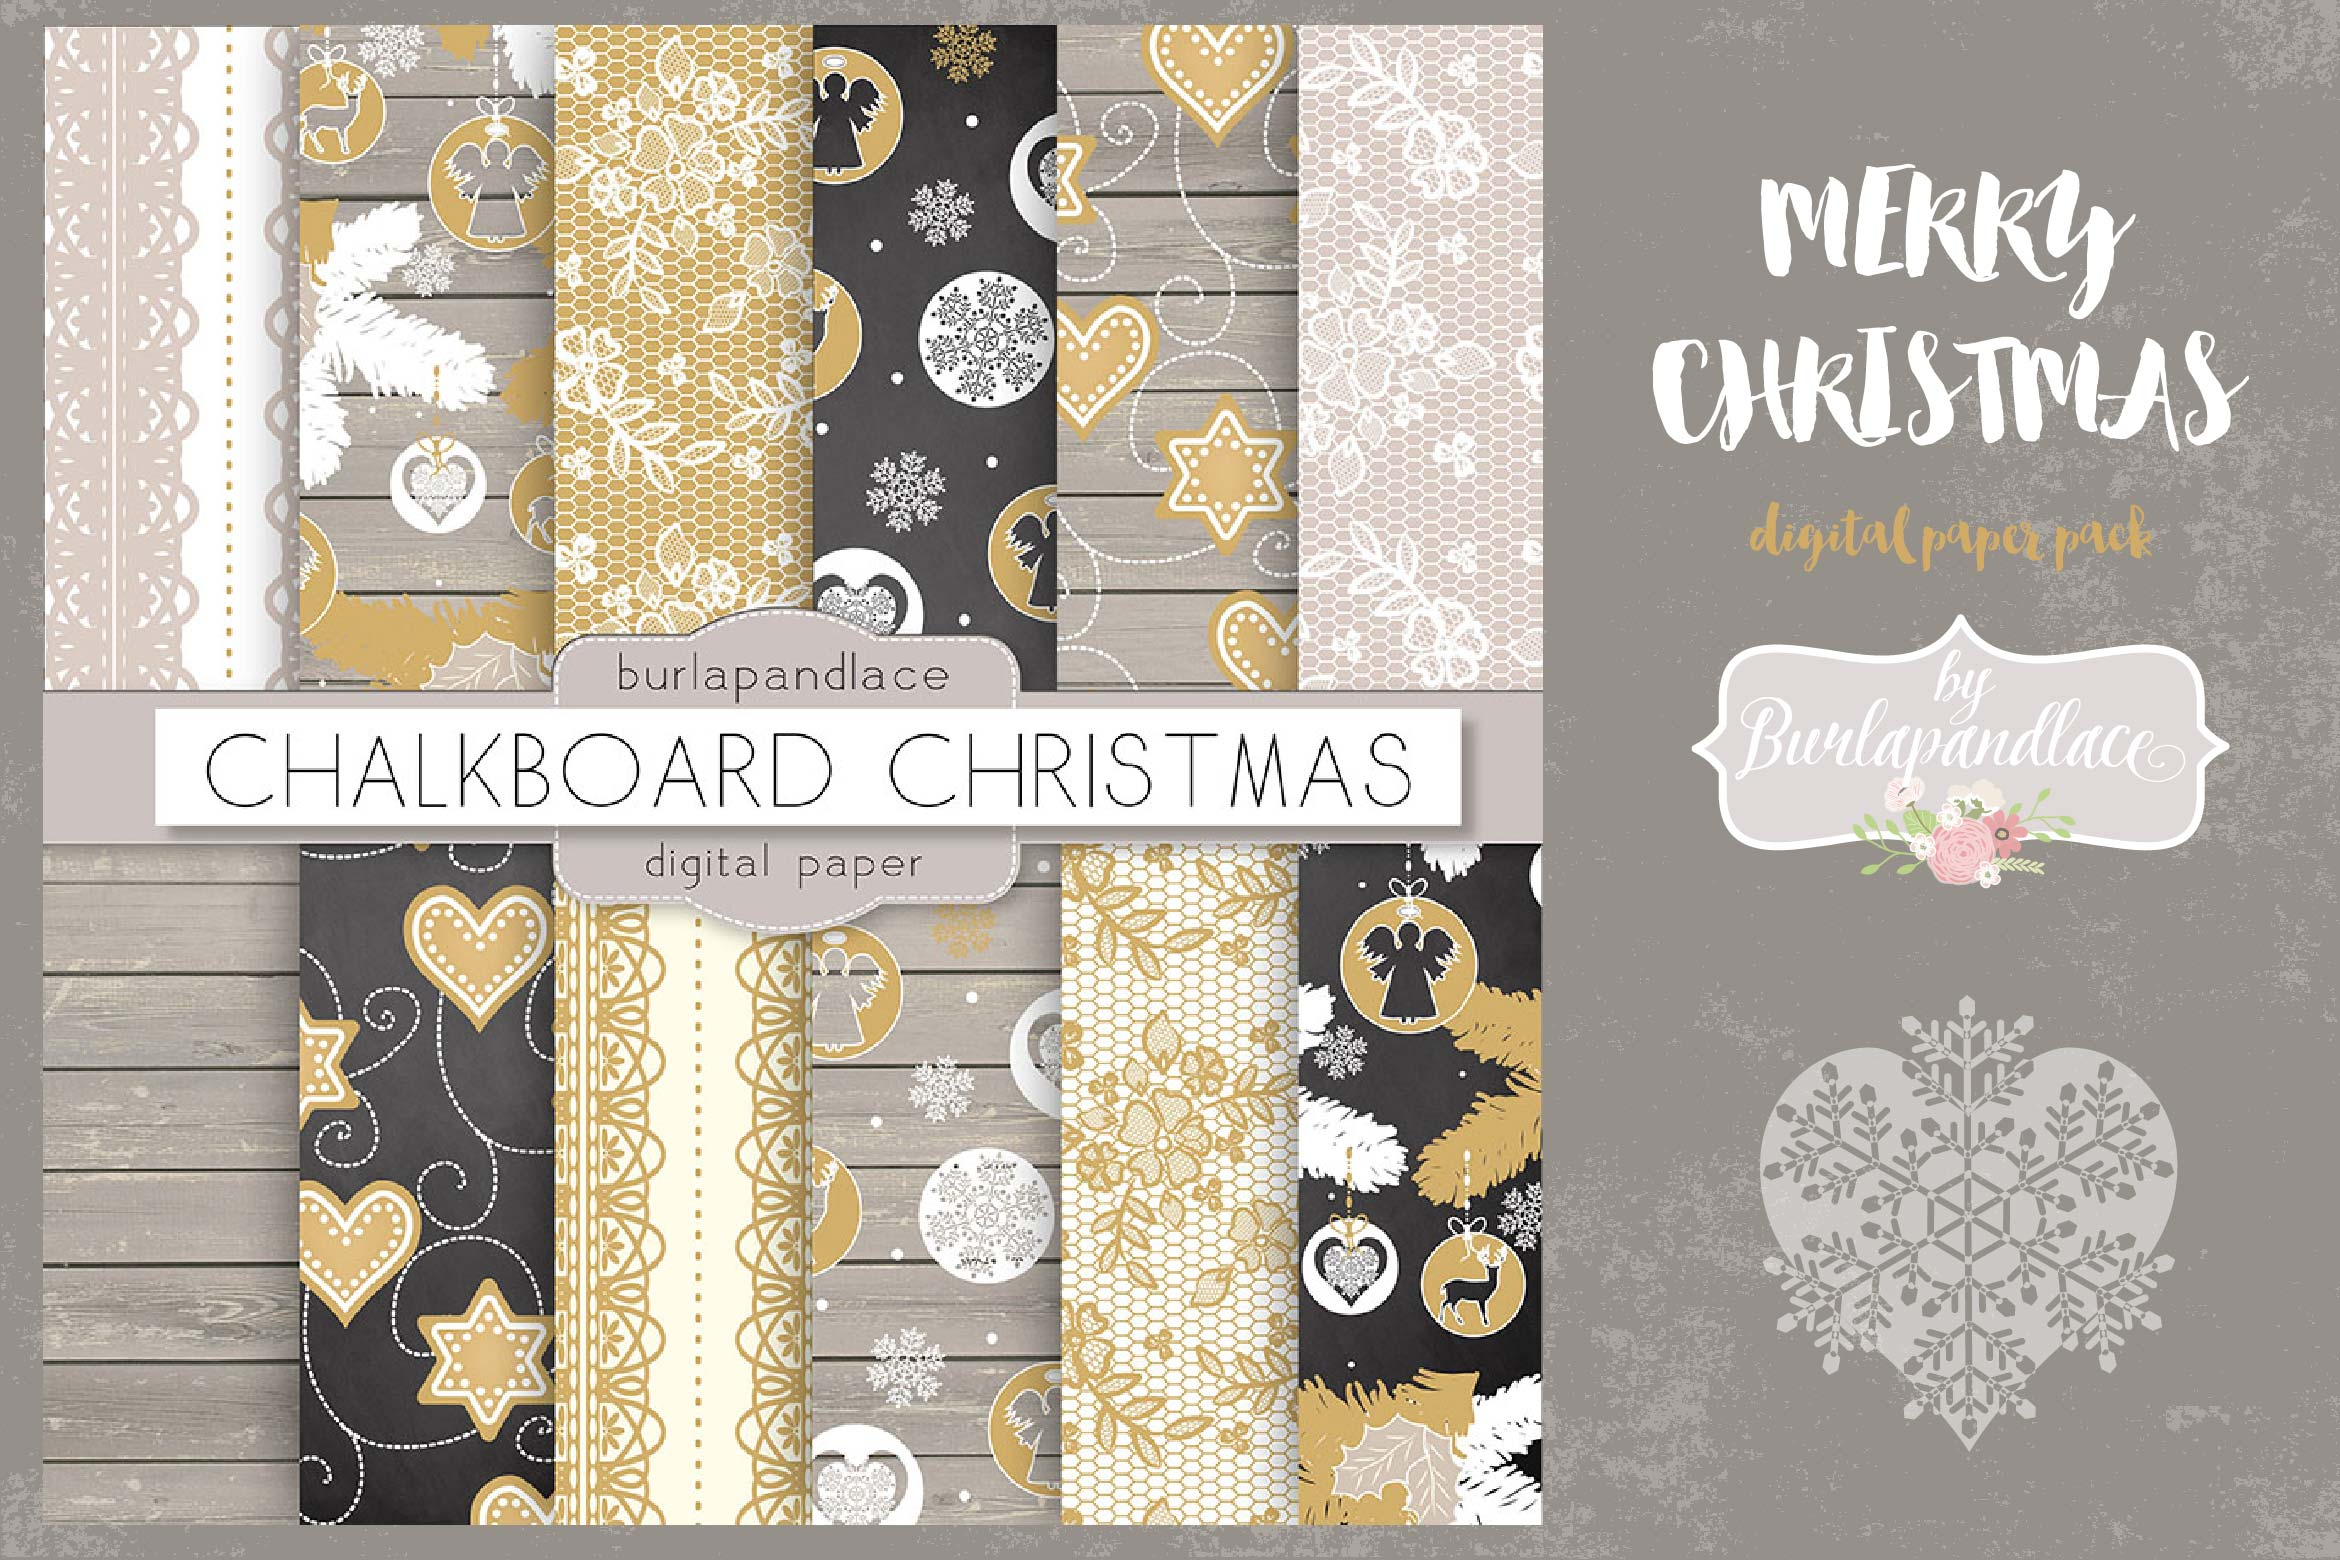 Merry Christmas digital paper pack example image 1